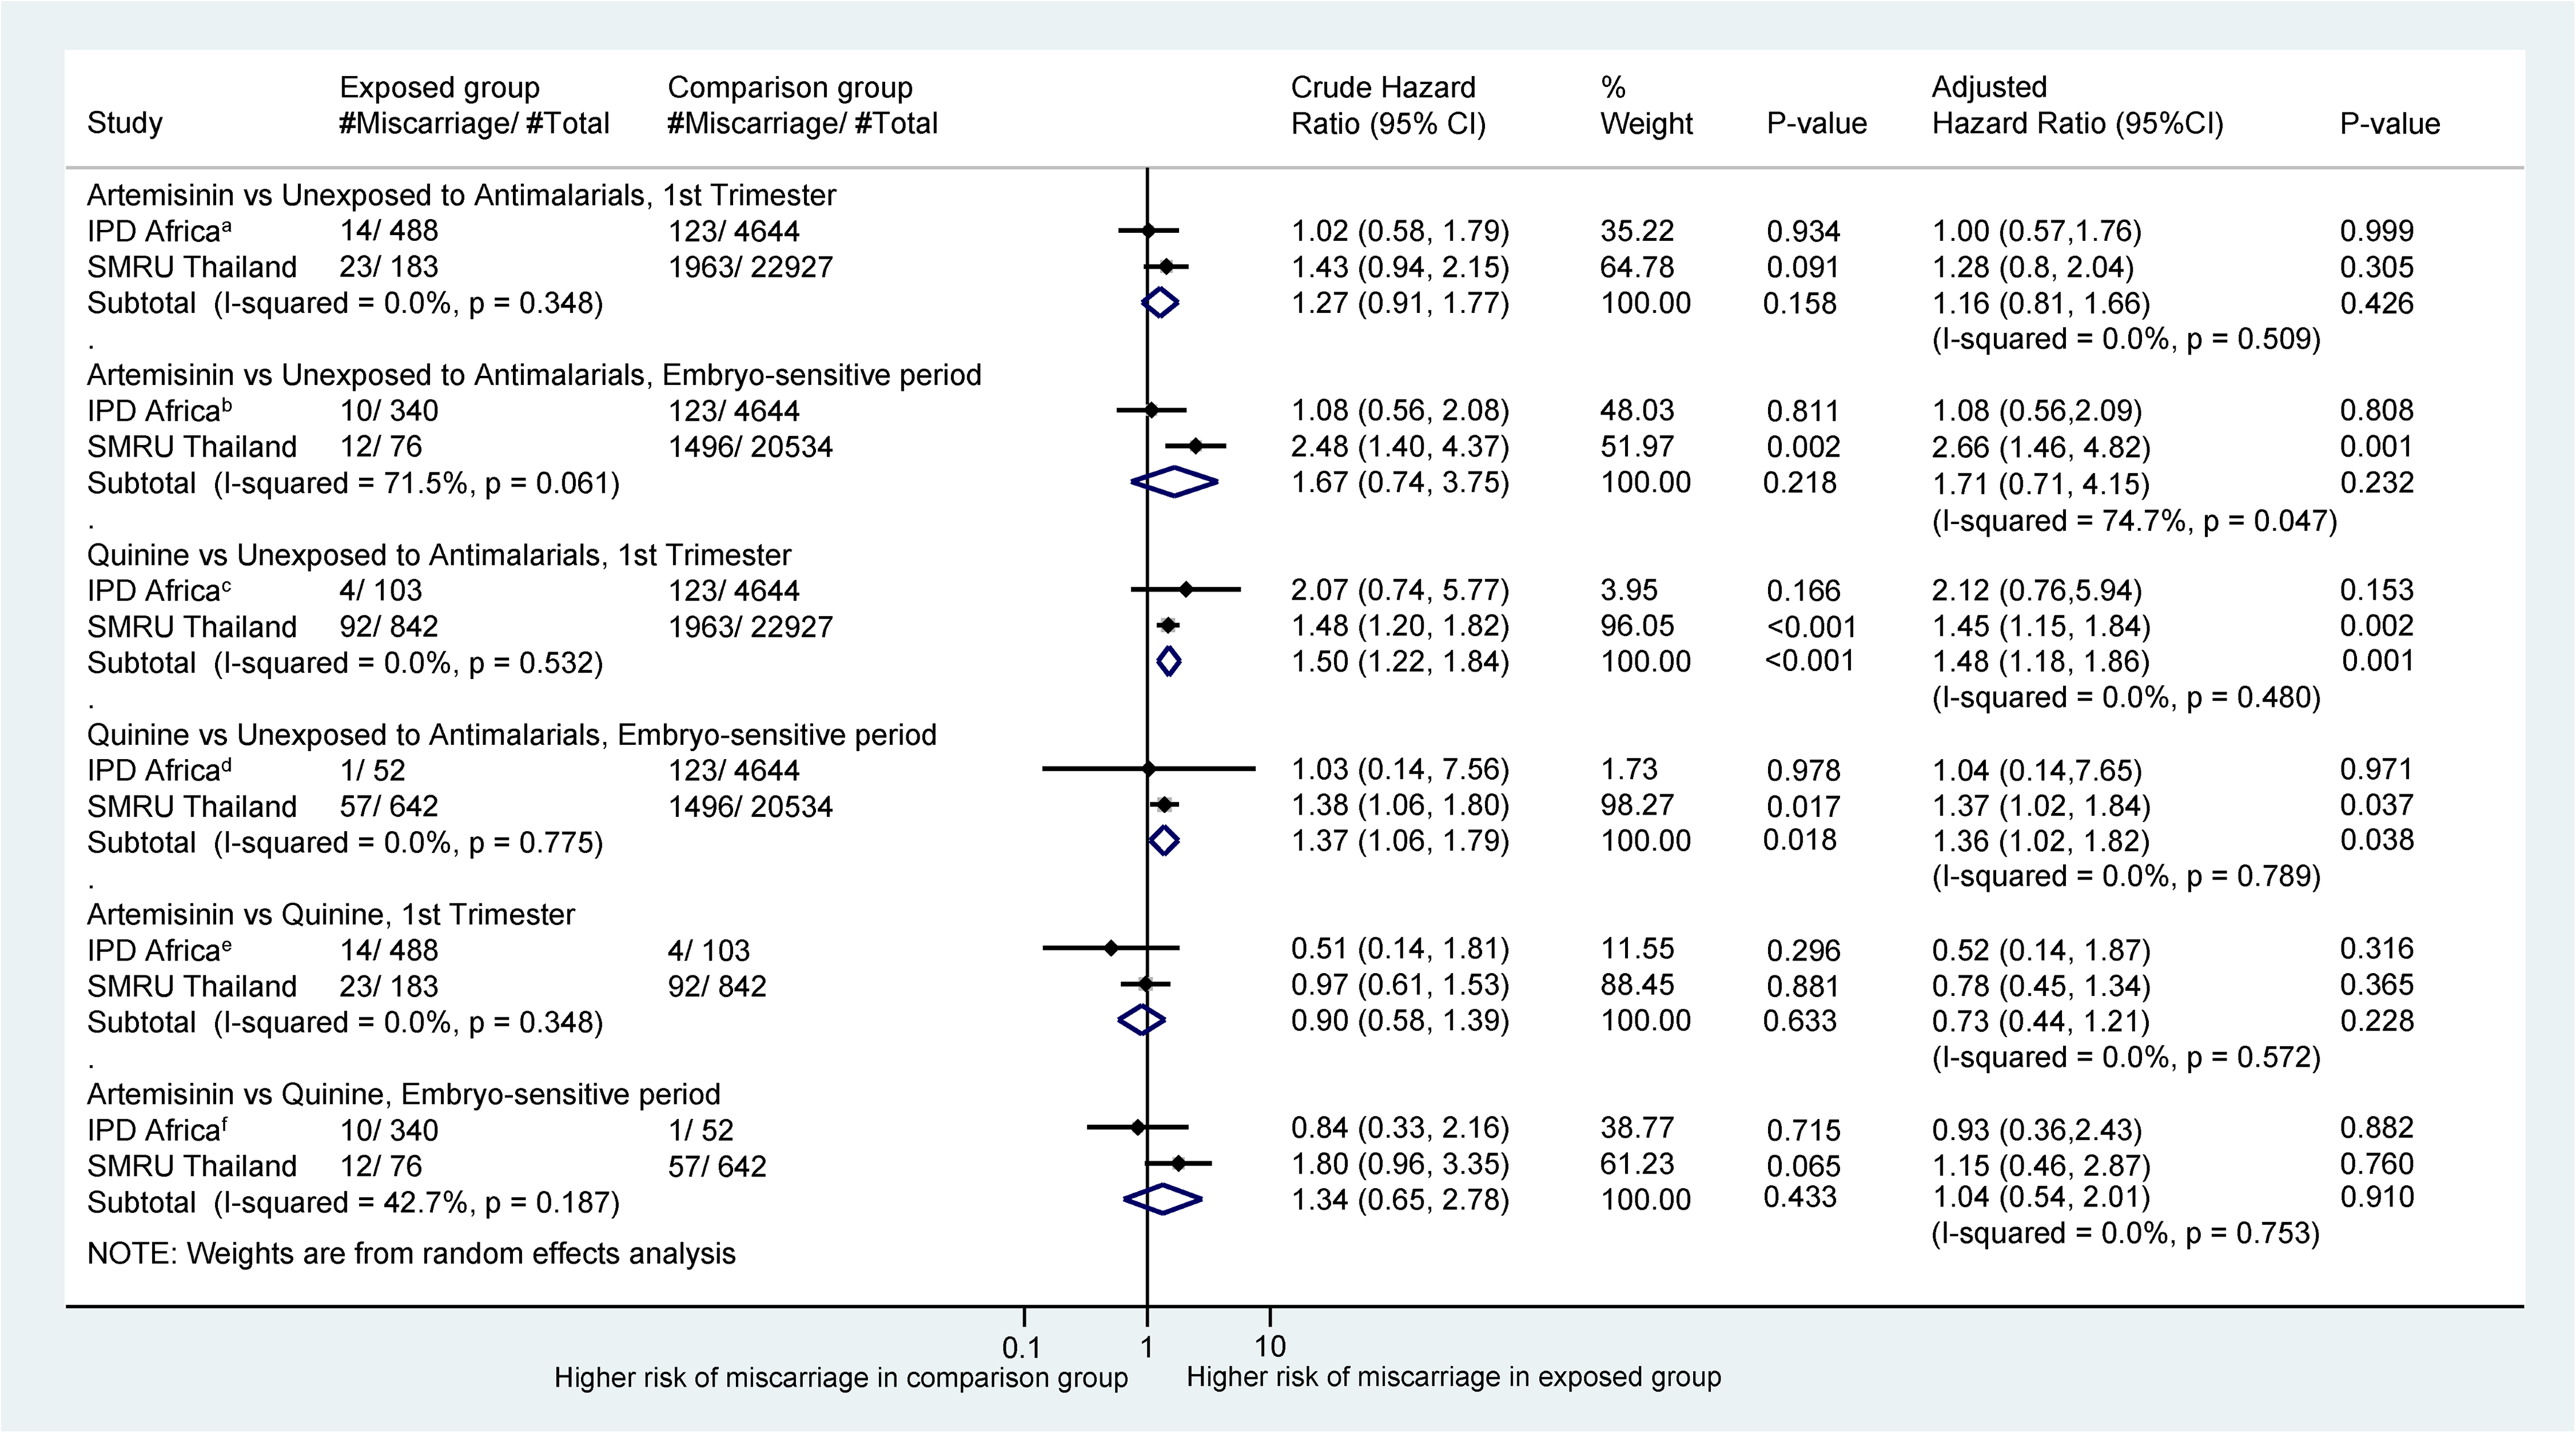 Forest plot for aggregated data meta-analysis of crude and adjusted hazard ratios for the association between different antimalarial exposure categories and miscarriage.